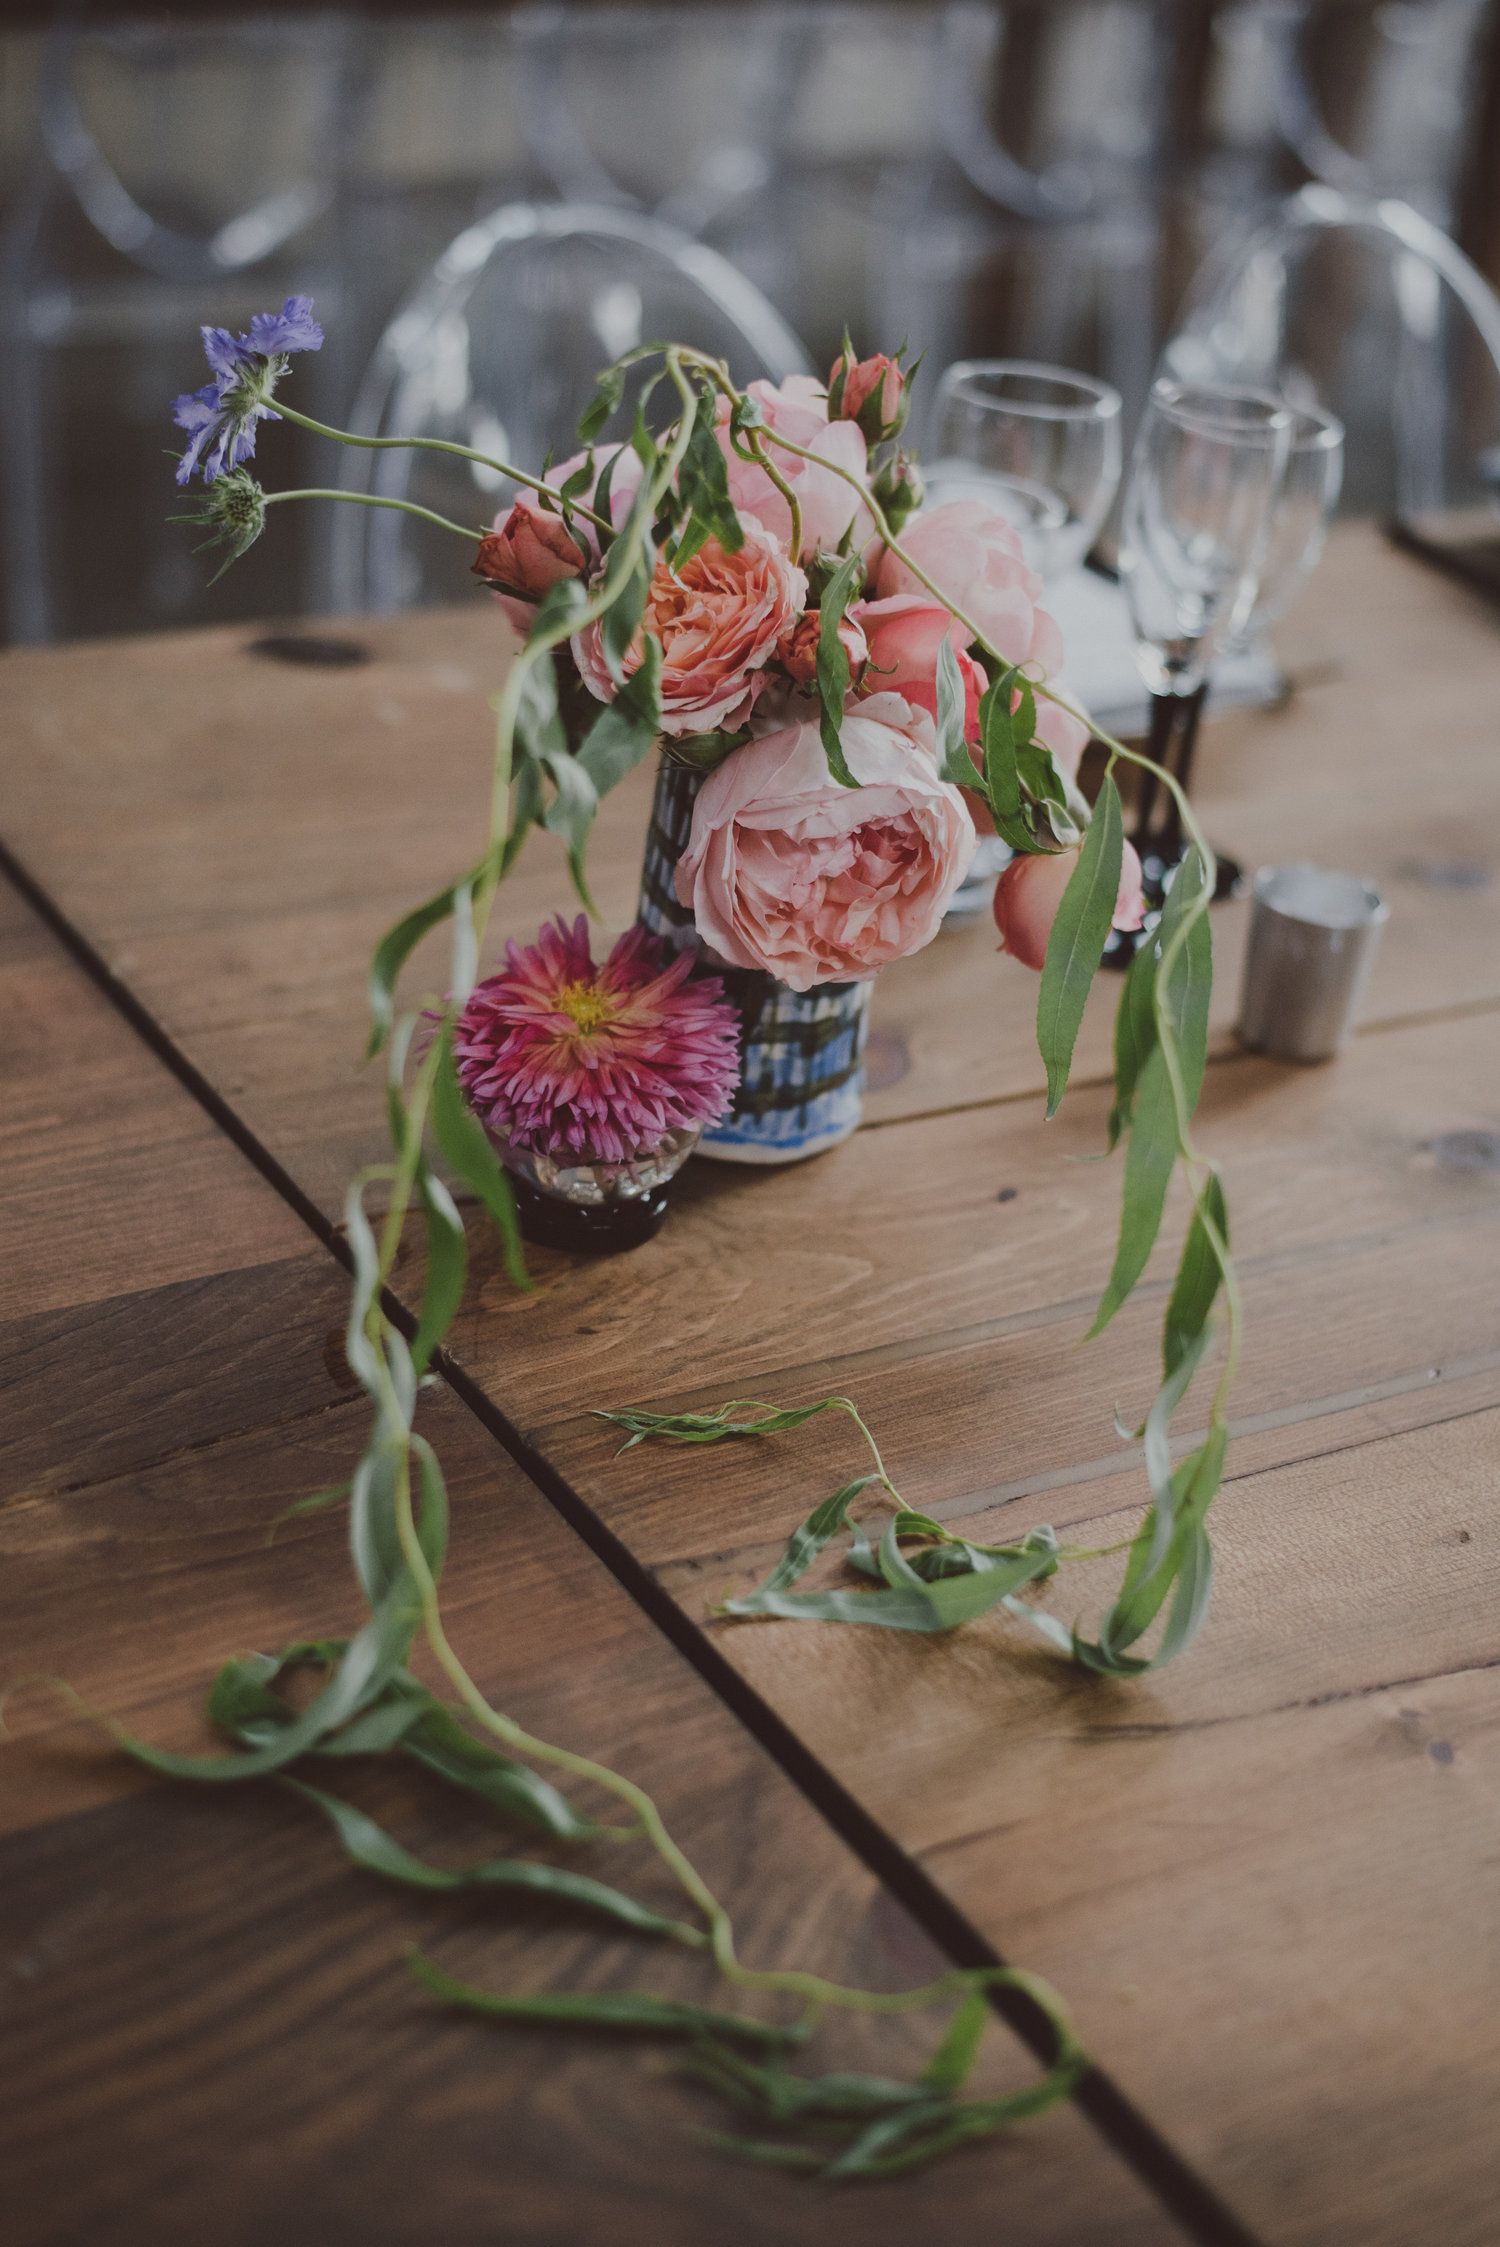 Pin by Madeline Waggoner on b+m wedding Table